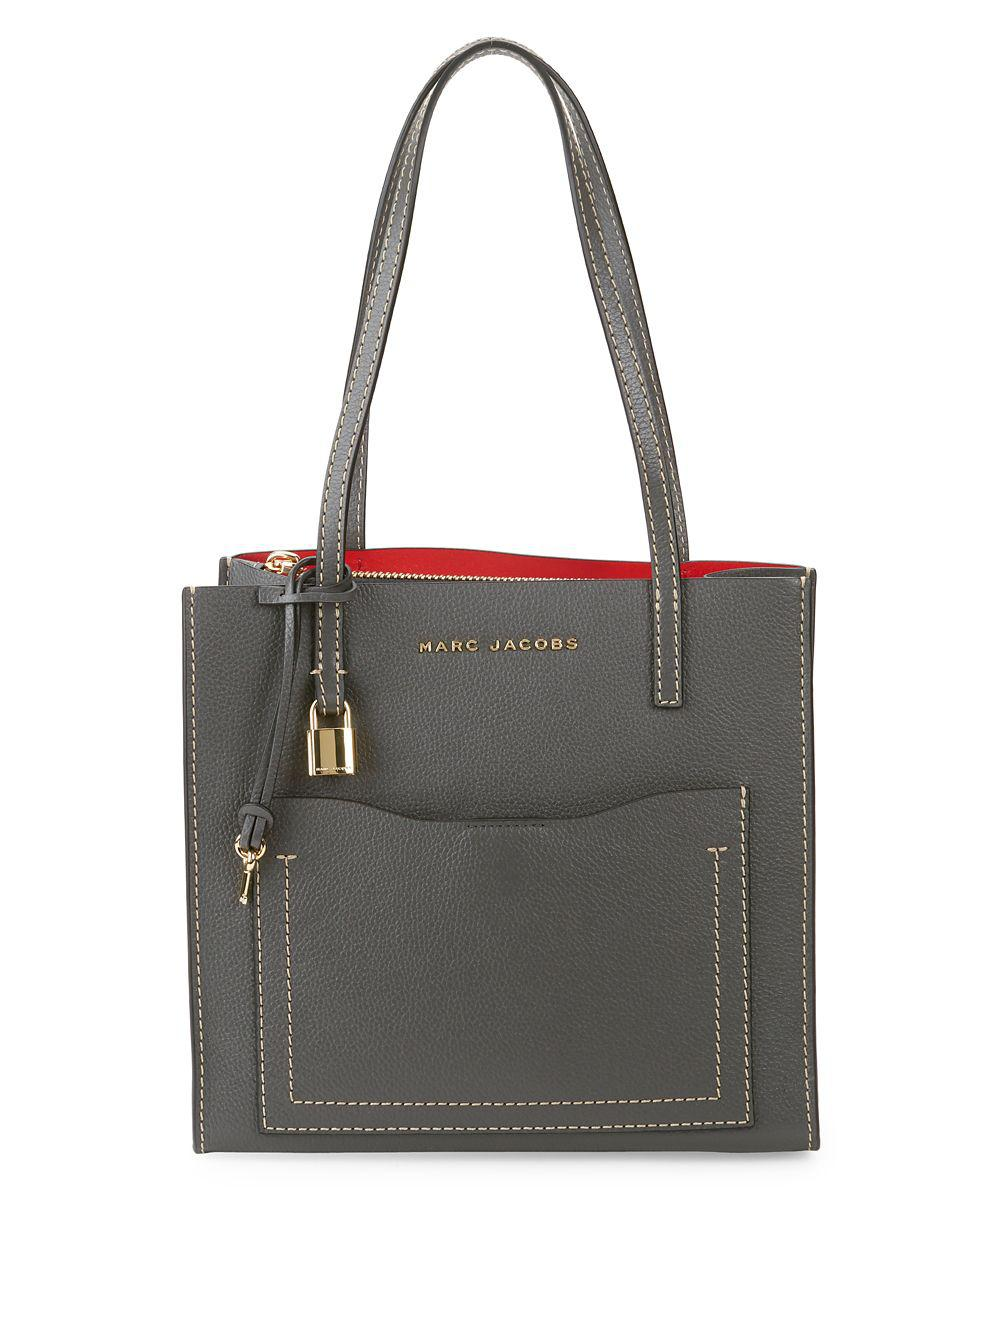 bfb76892486f Lyst - Marc Jacobs Peony Medium Leather Tote in Black